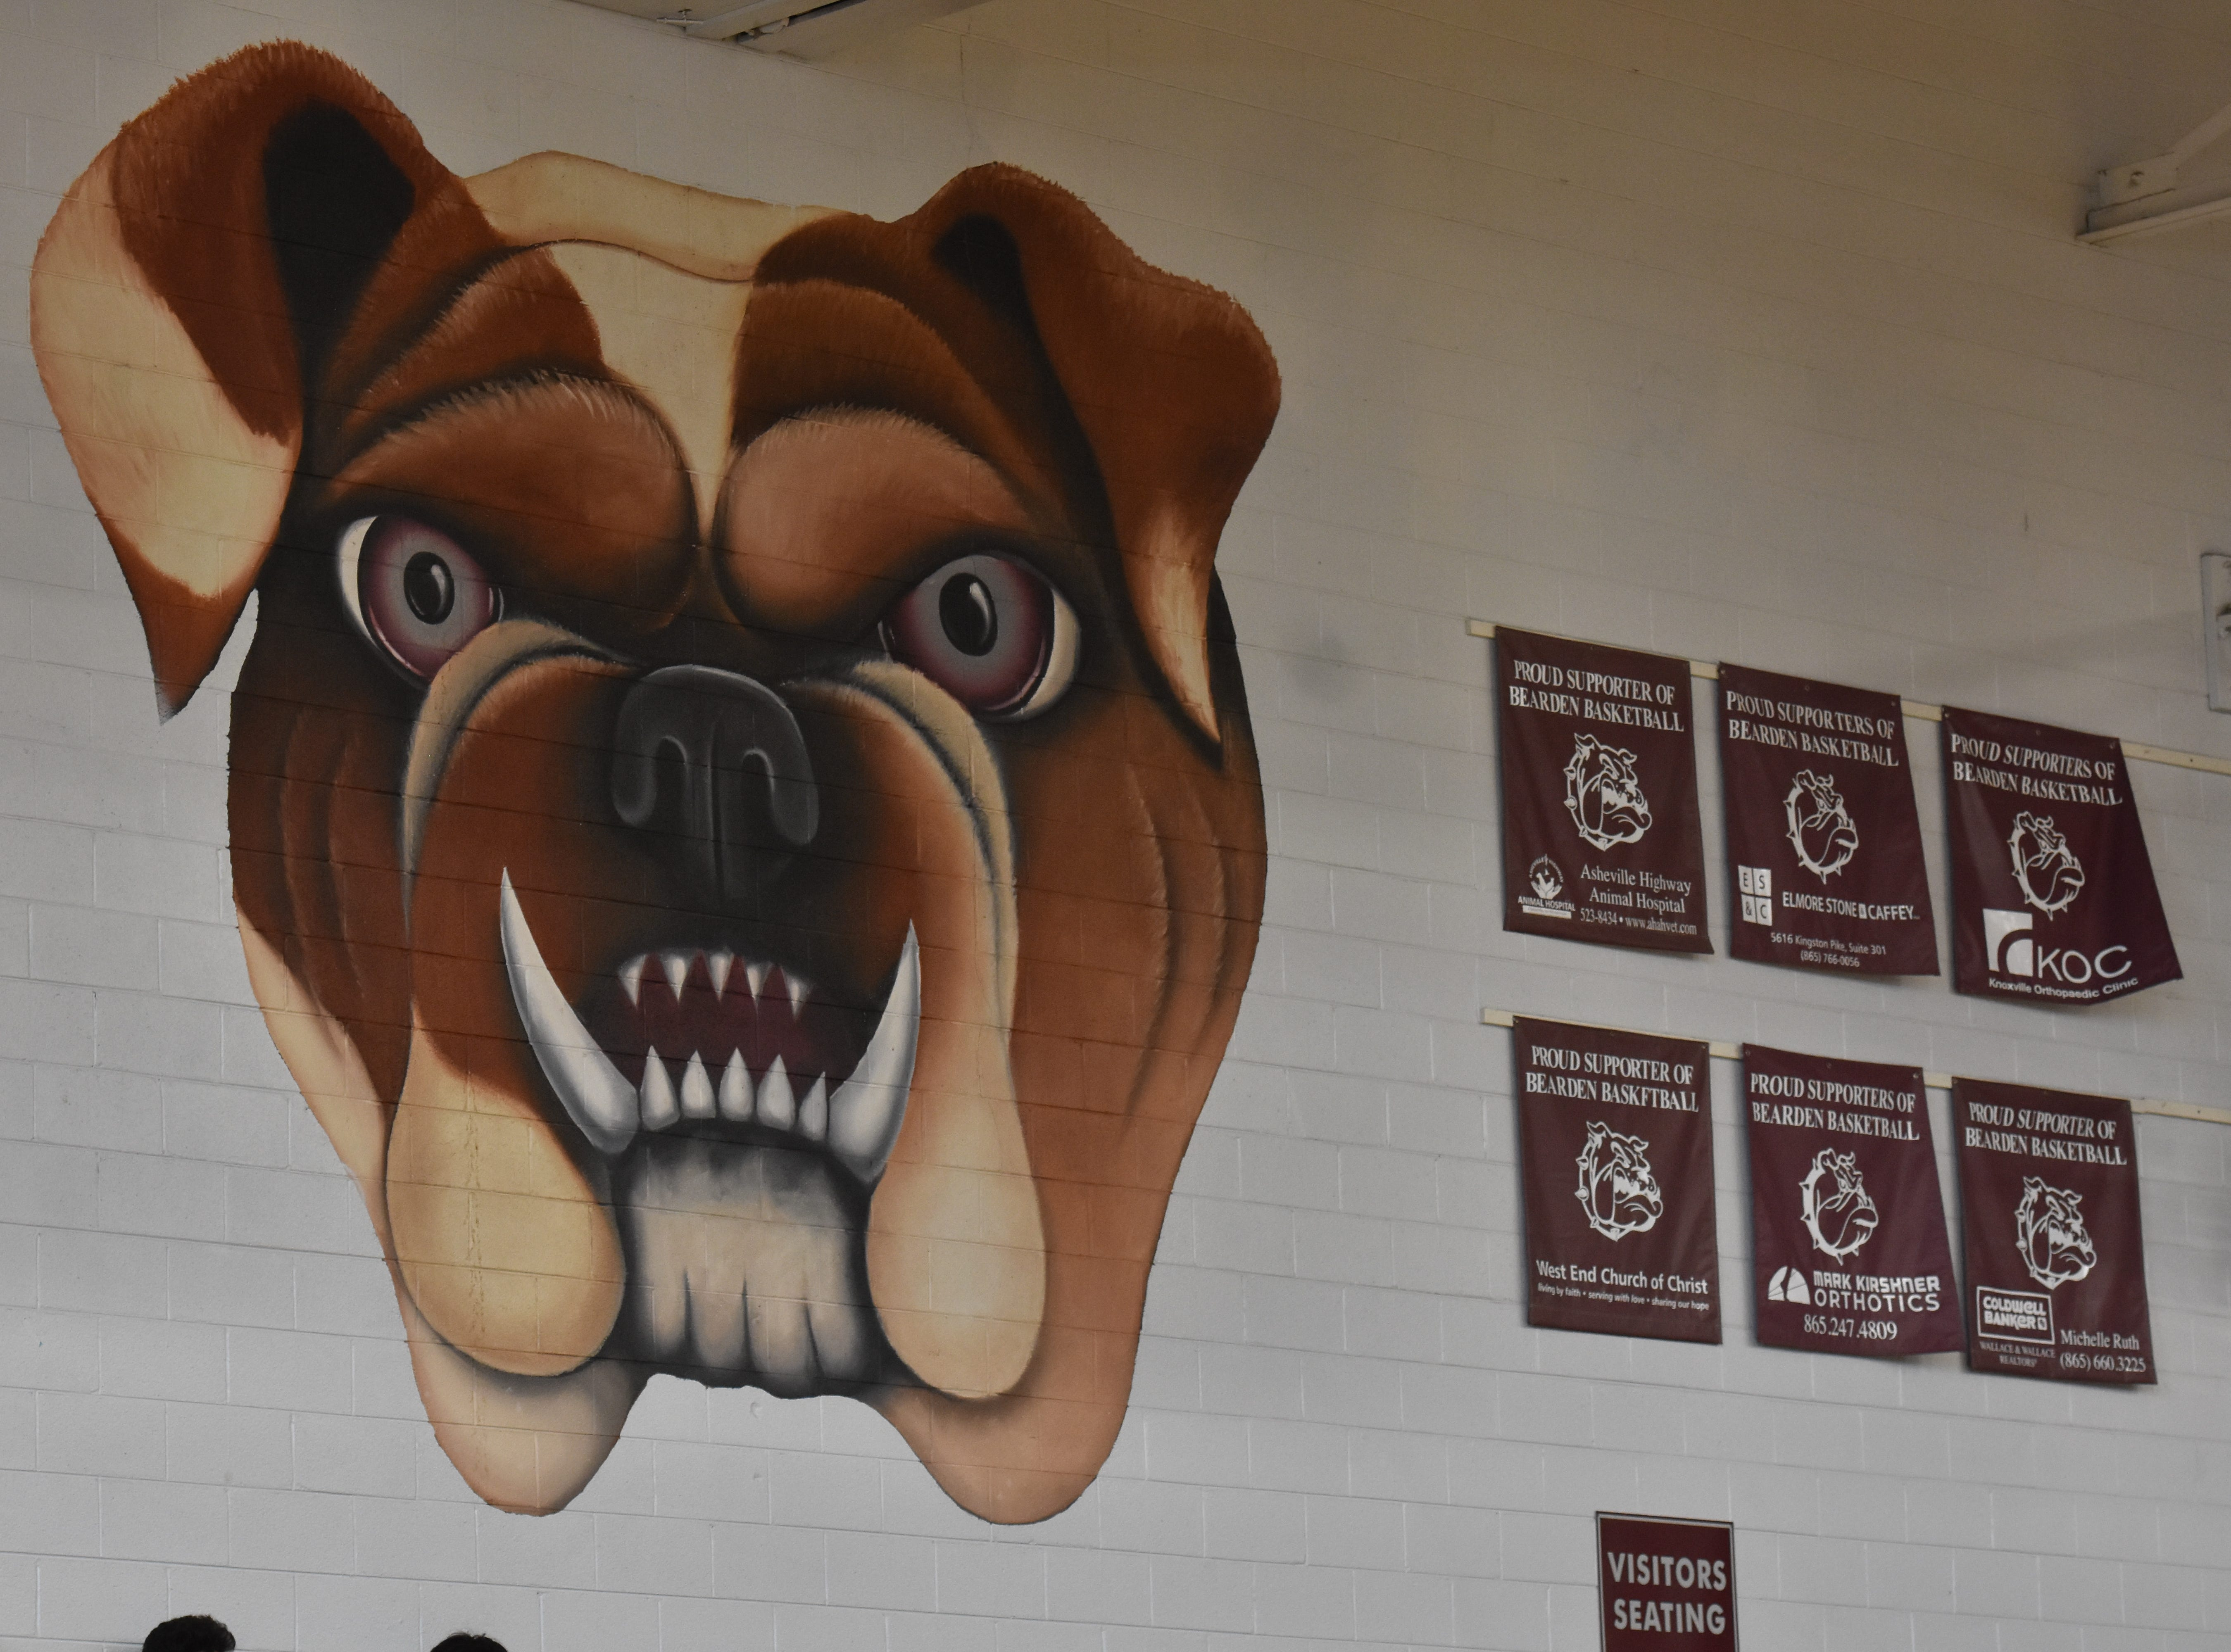 The Bearden High mascot is painted on the wall of the gym.